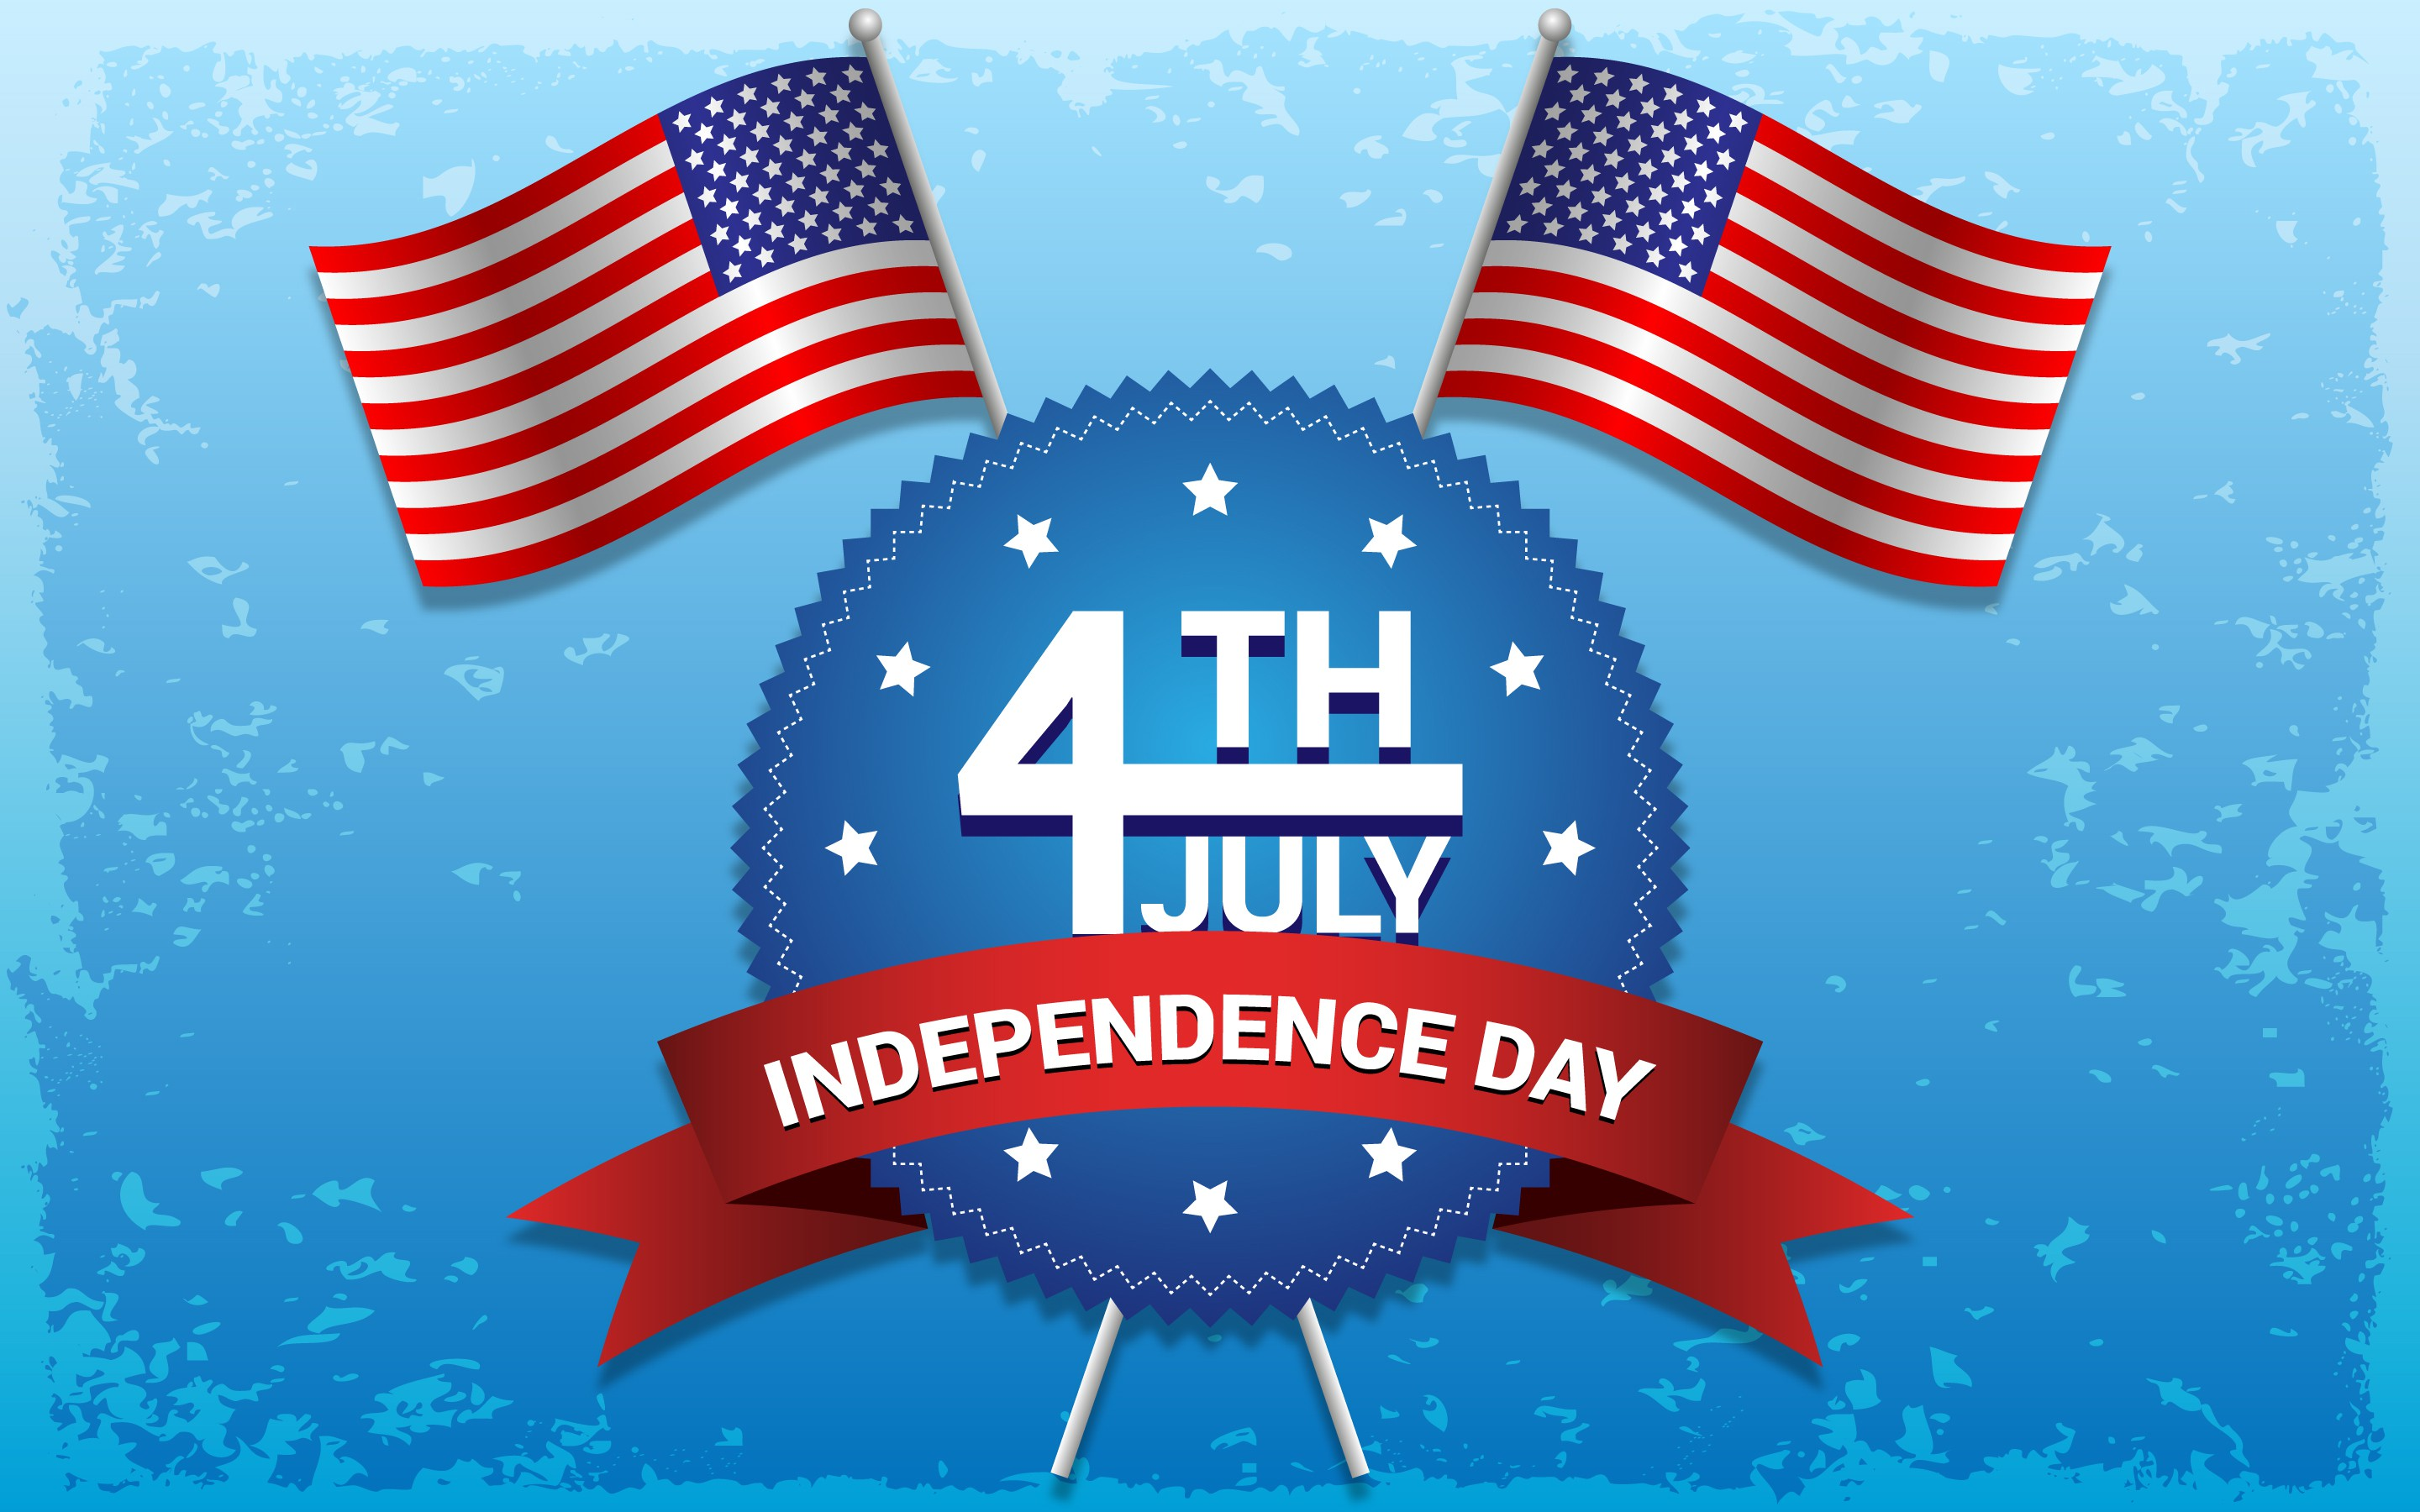 USA 4th July Independence Day Patriotic Quotes Messages Images 2880x1800